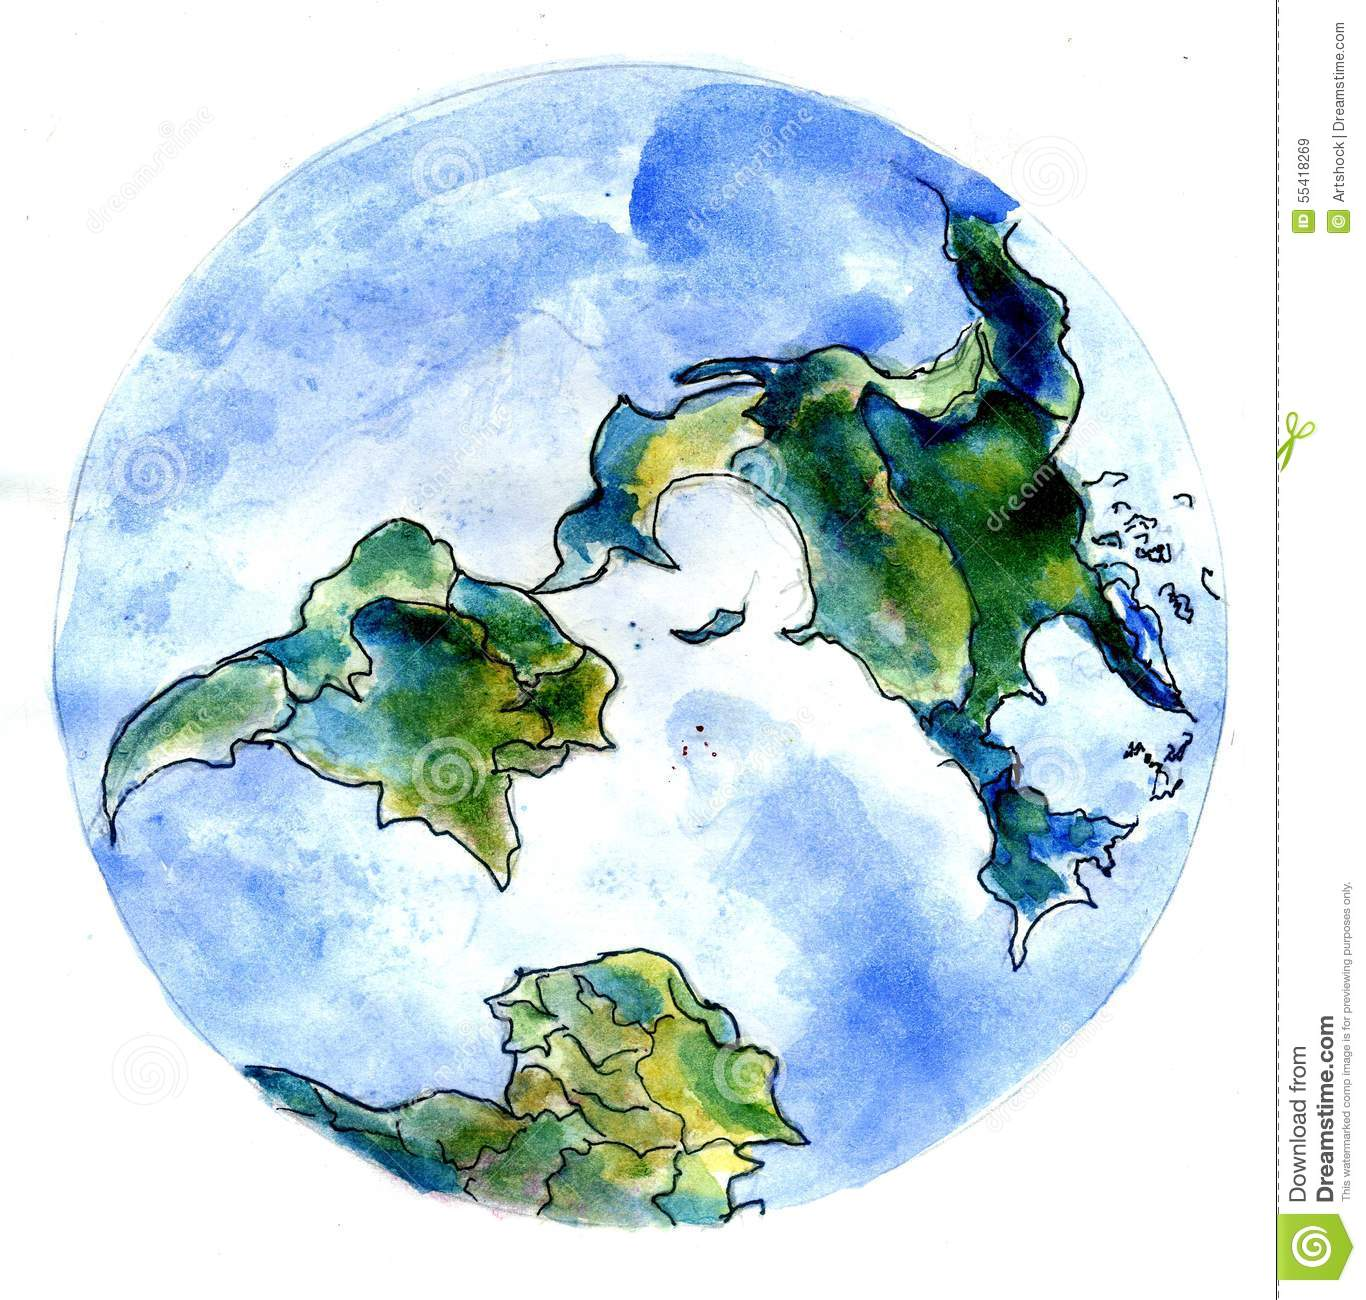 Stylized Watercolor Painting Of The Earth Planet Hand Drawn